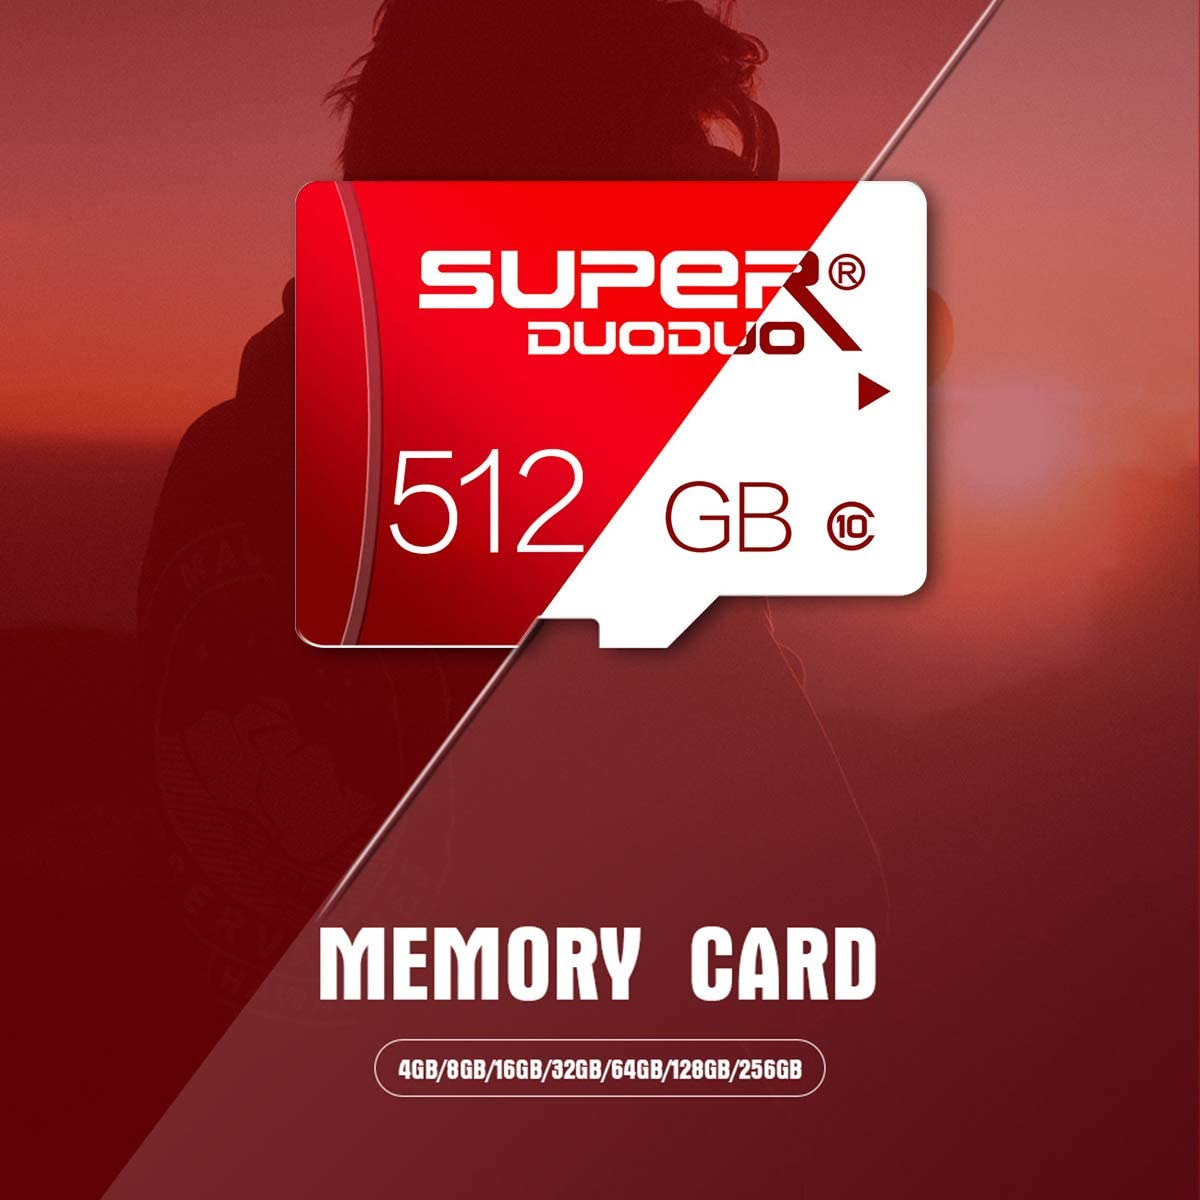 Micro SD Card 512gb,Micro Memory Card Class 10 High Speed Memory Card with SD Card Adapter for Camera, Phone, Computer,Dash Came,Tachograph,Tablet,Drone(512gb)